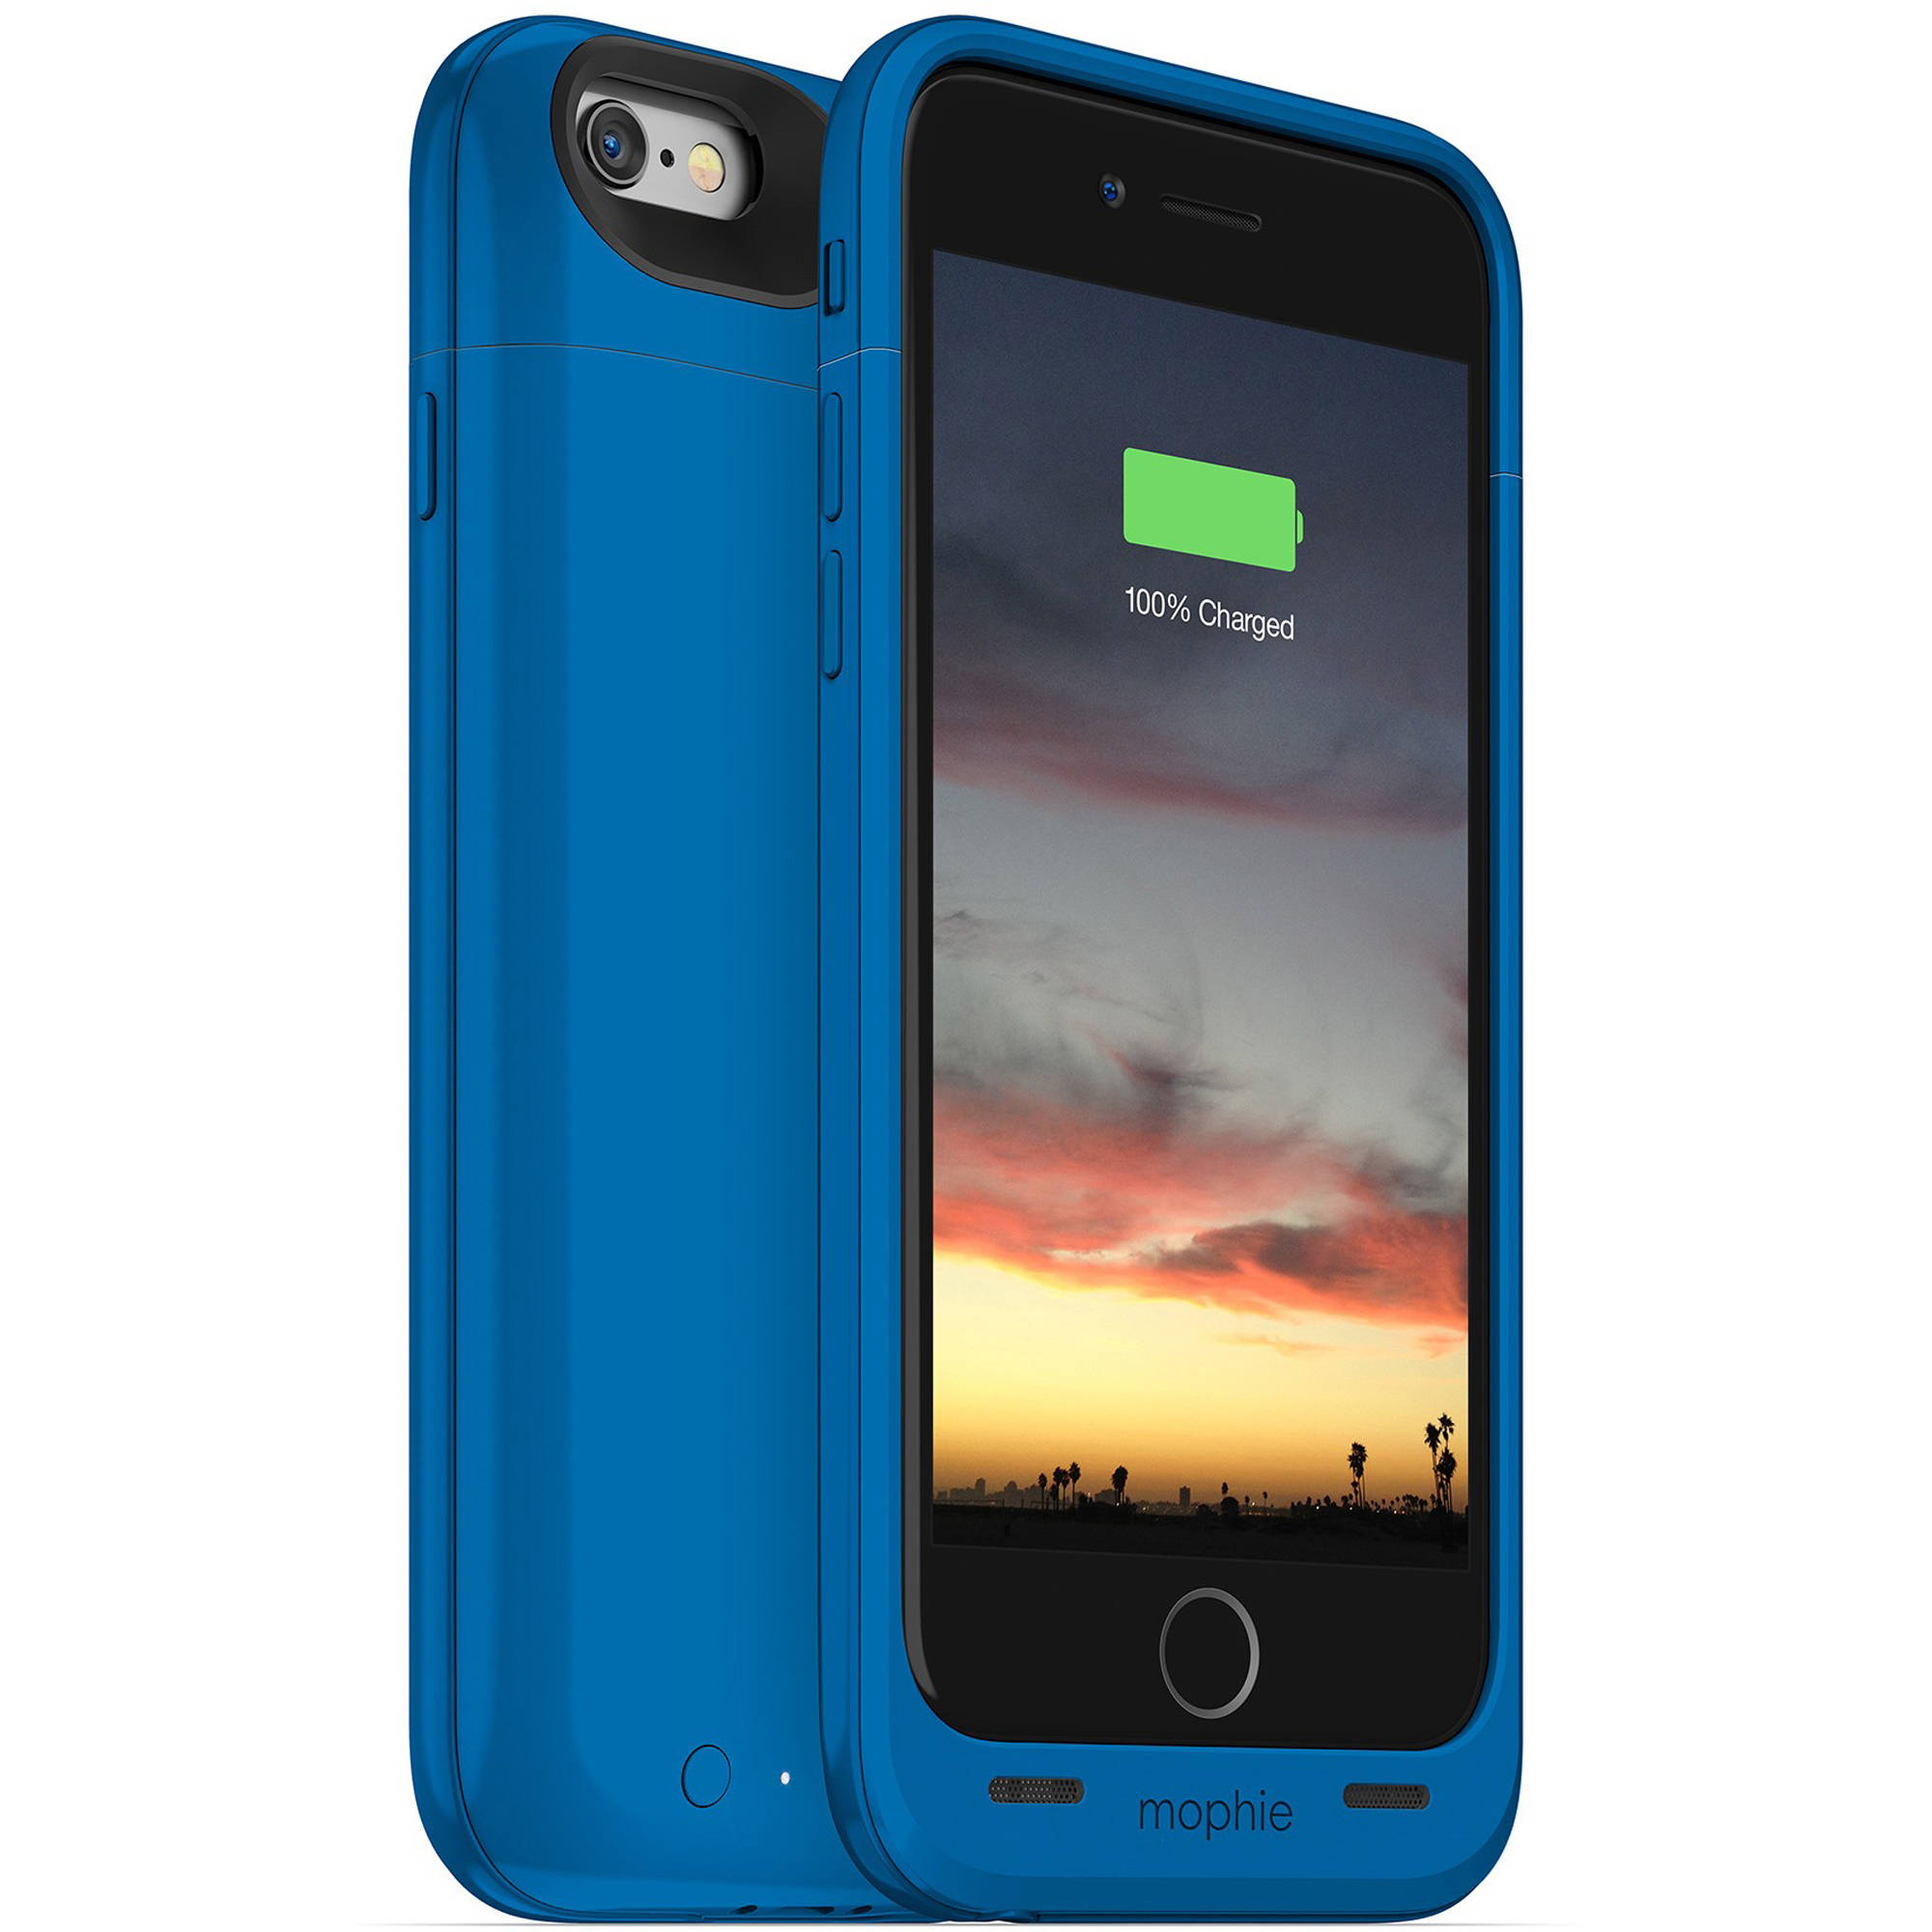 Mophie Juice Pack Air For Iphone 6 6s Blue 3047 B H Photo Video Shop with afterpay on eligible items. mophie juice pack air for iphone 6 6s blue